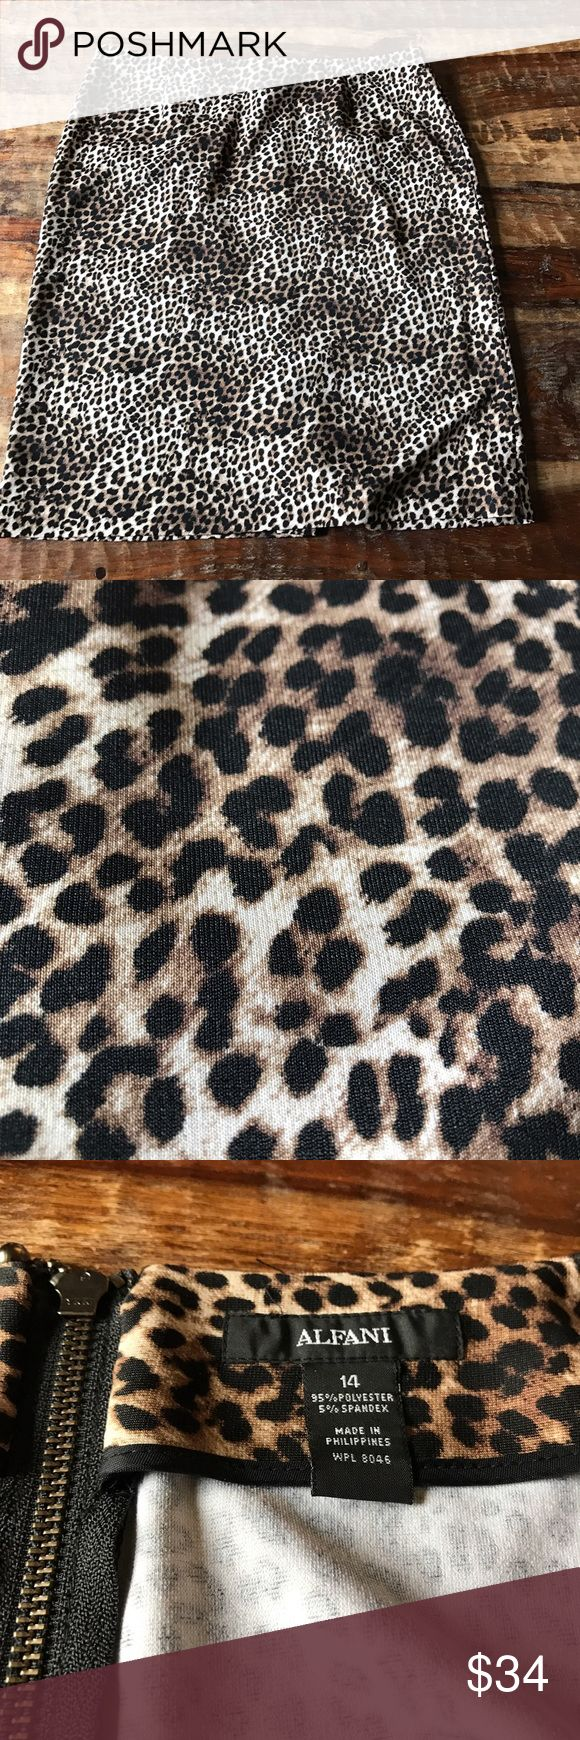 "Alfani Leopard Pencil Skirt Super cute back zip pencil skirt in excellent condition. Waist is 18"" across laying flat and length is 23"" Alfani Skirts Pencil"